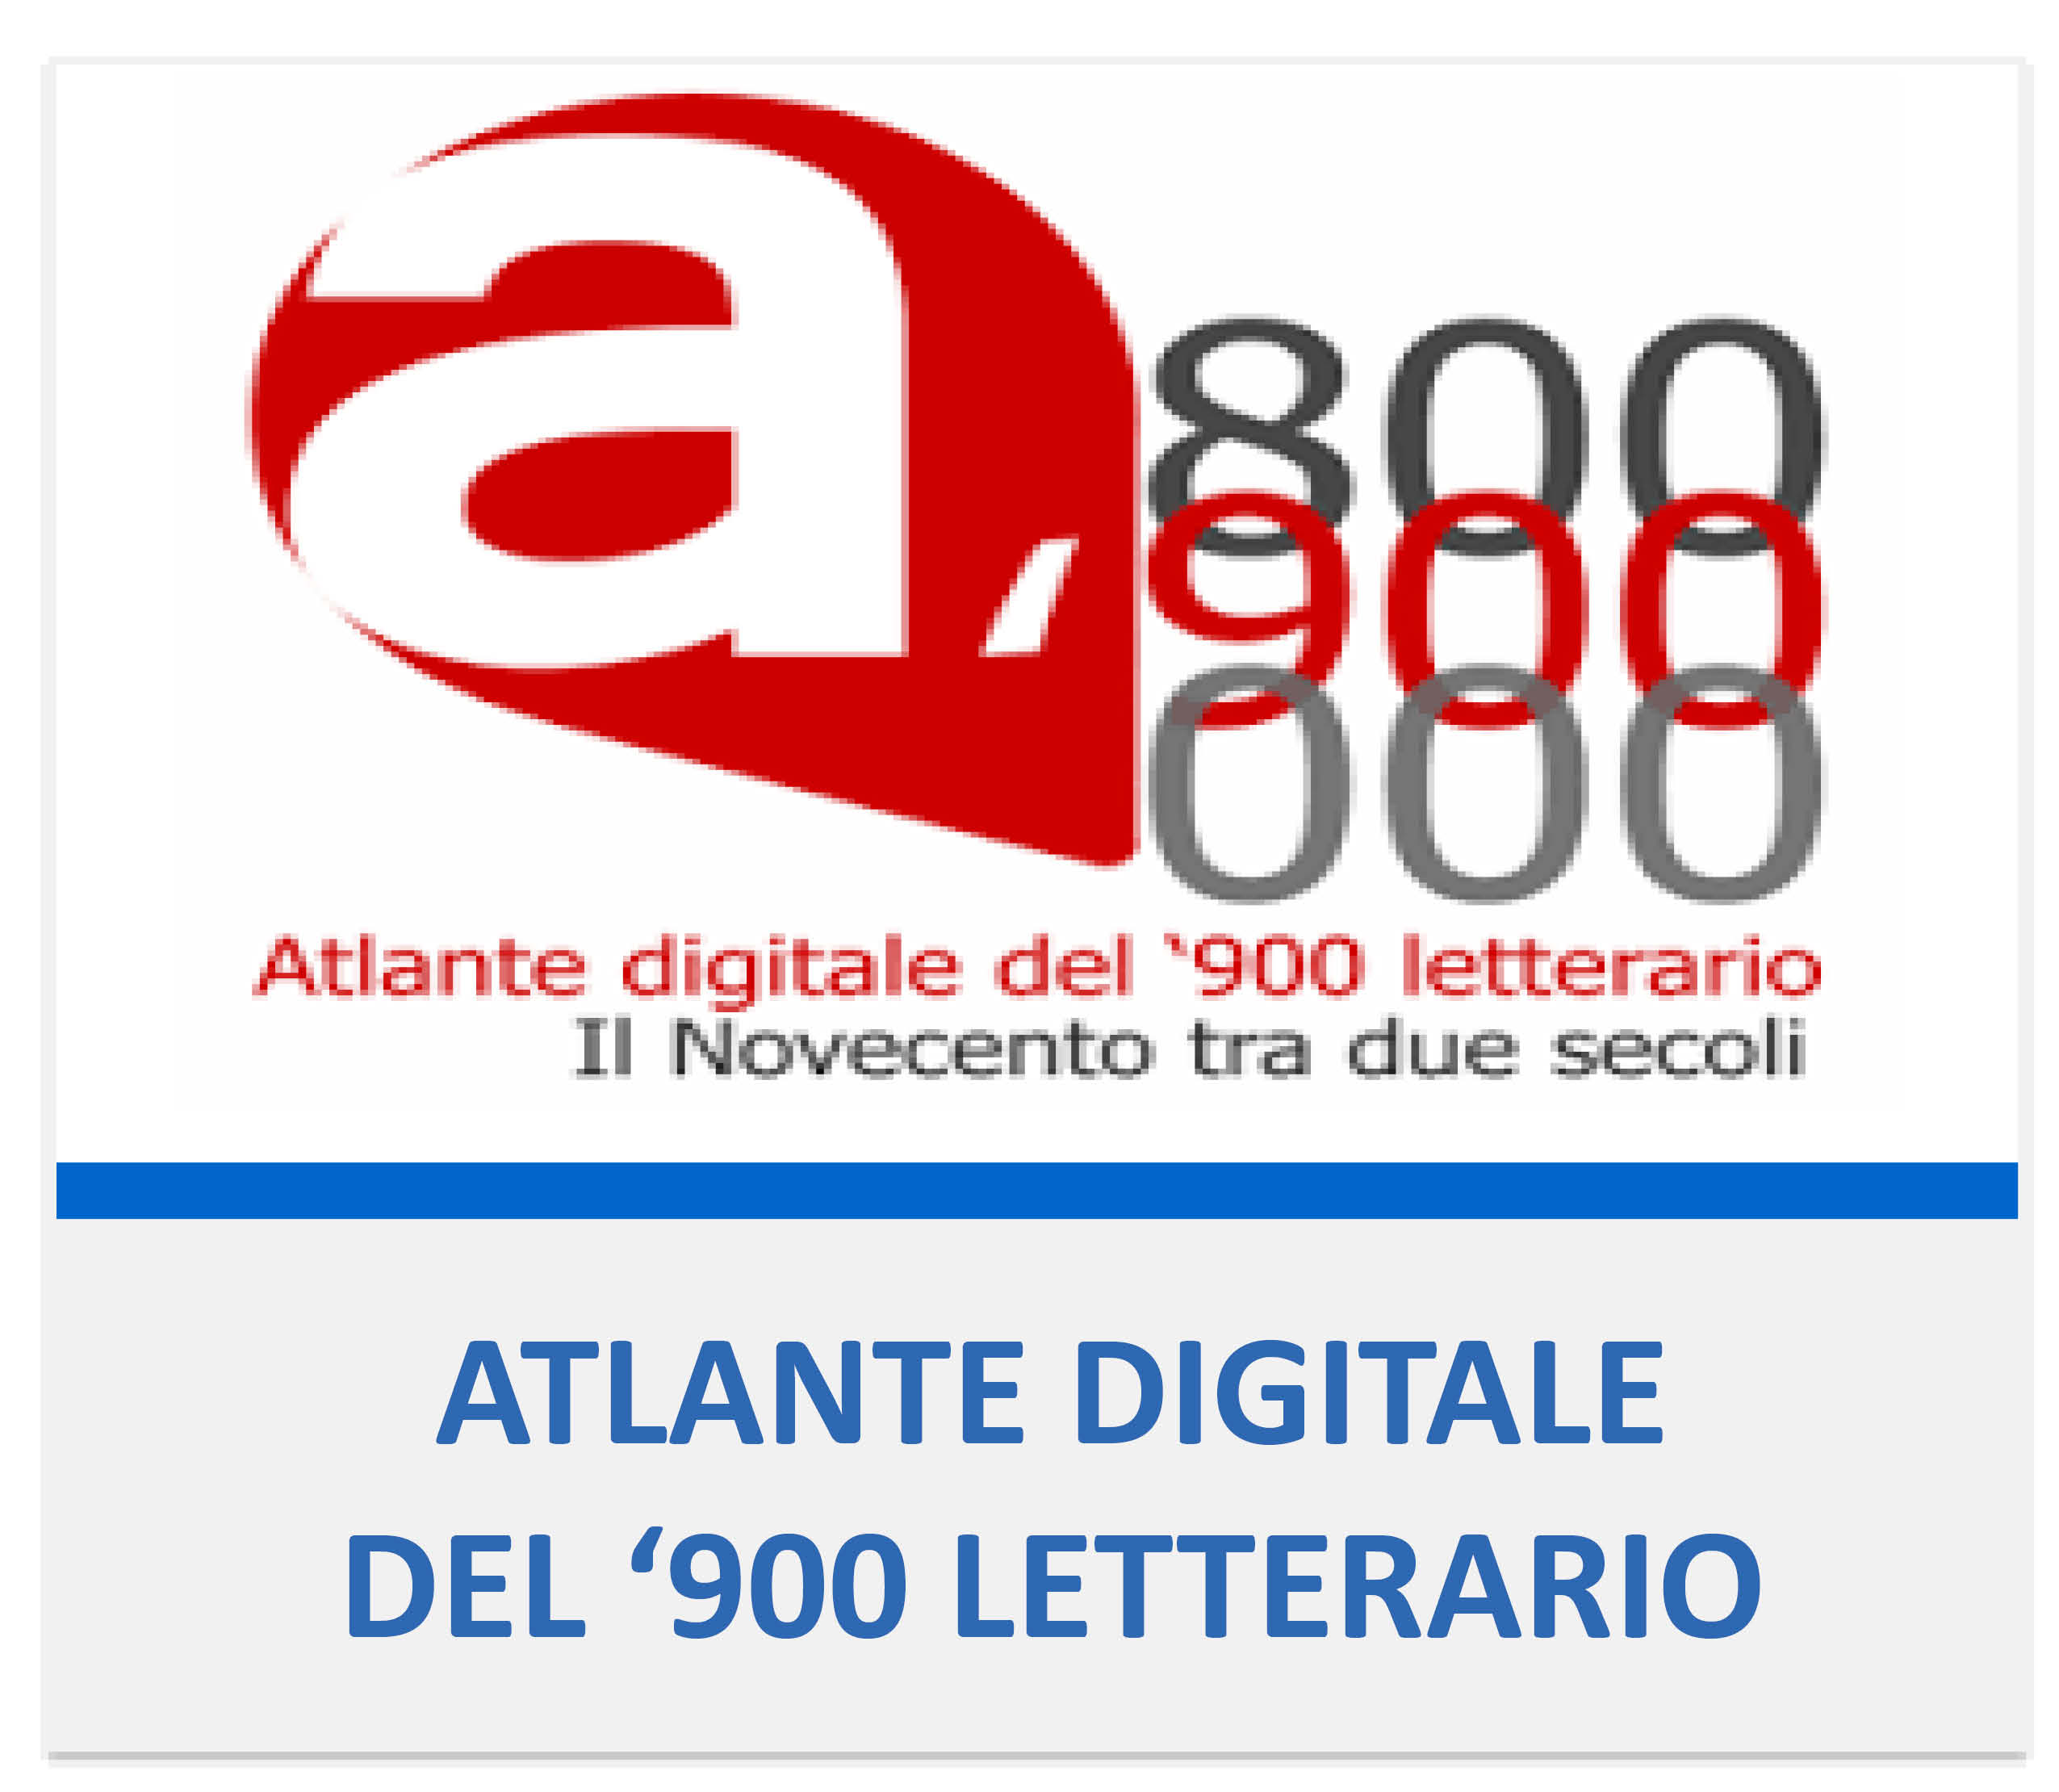 ATLANTE DIGITALE DEL 900 LETTERARIO